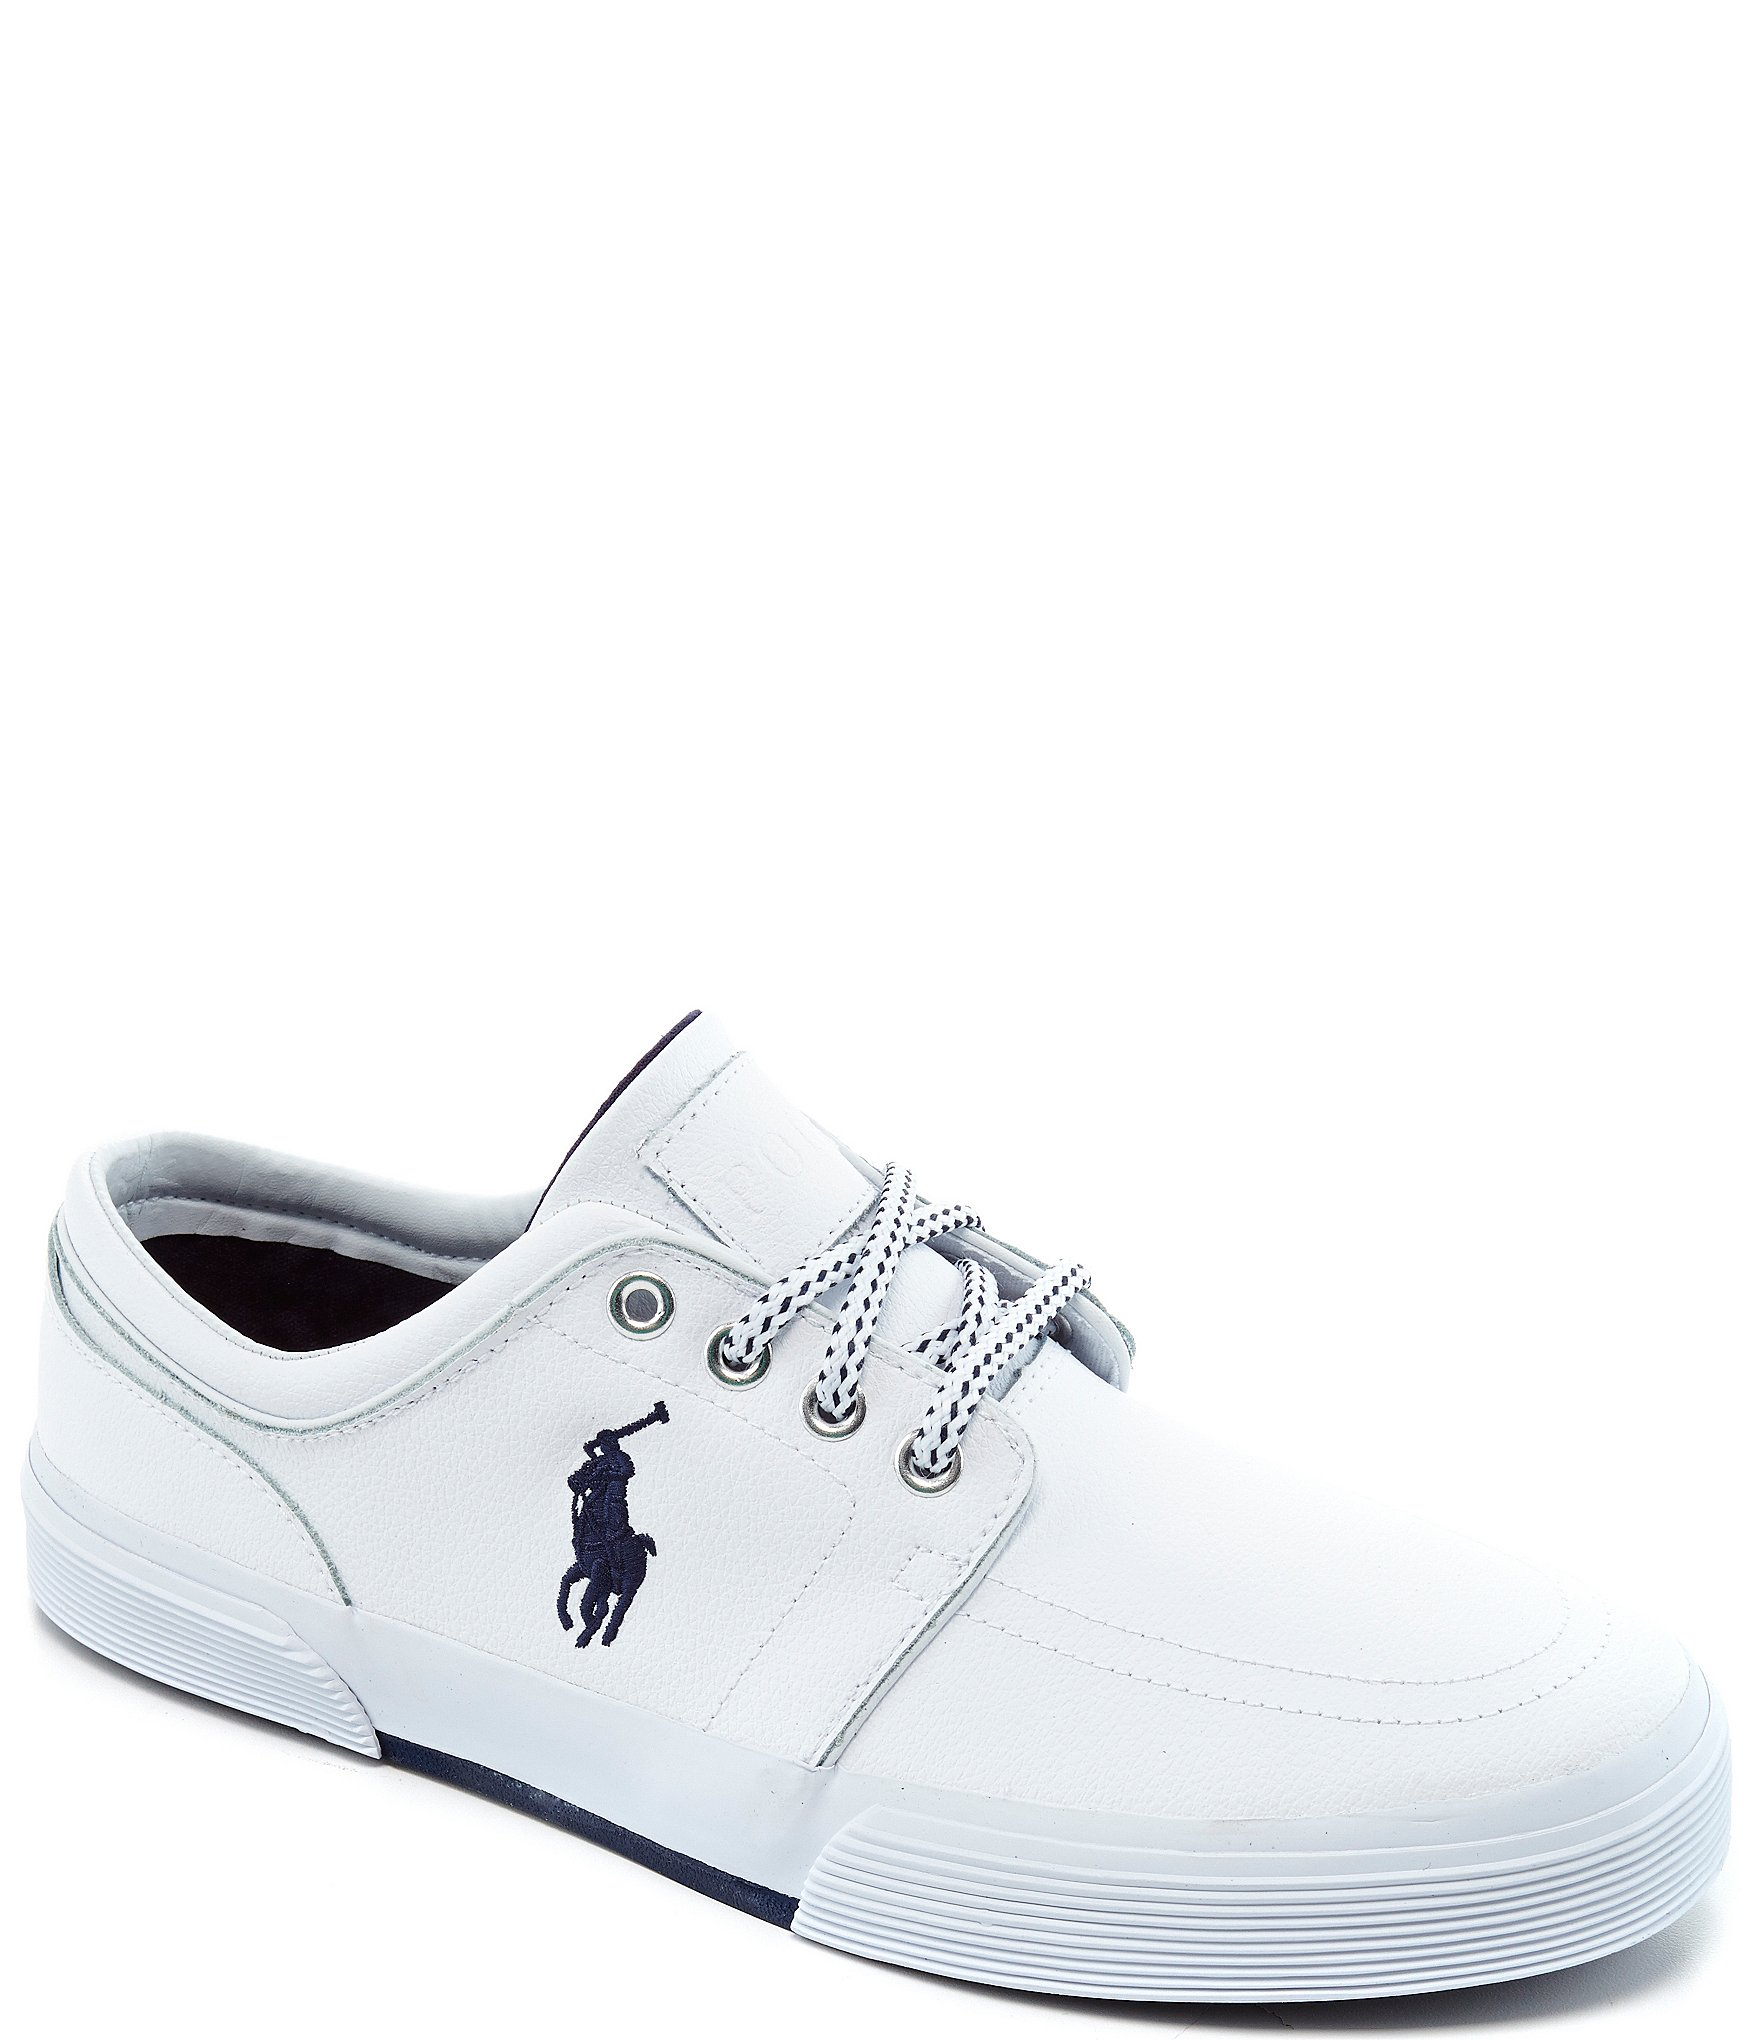 Men's Faxon Low Casual Sneakers by Polo Ralph Lauren